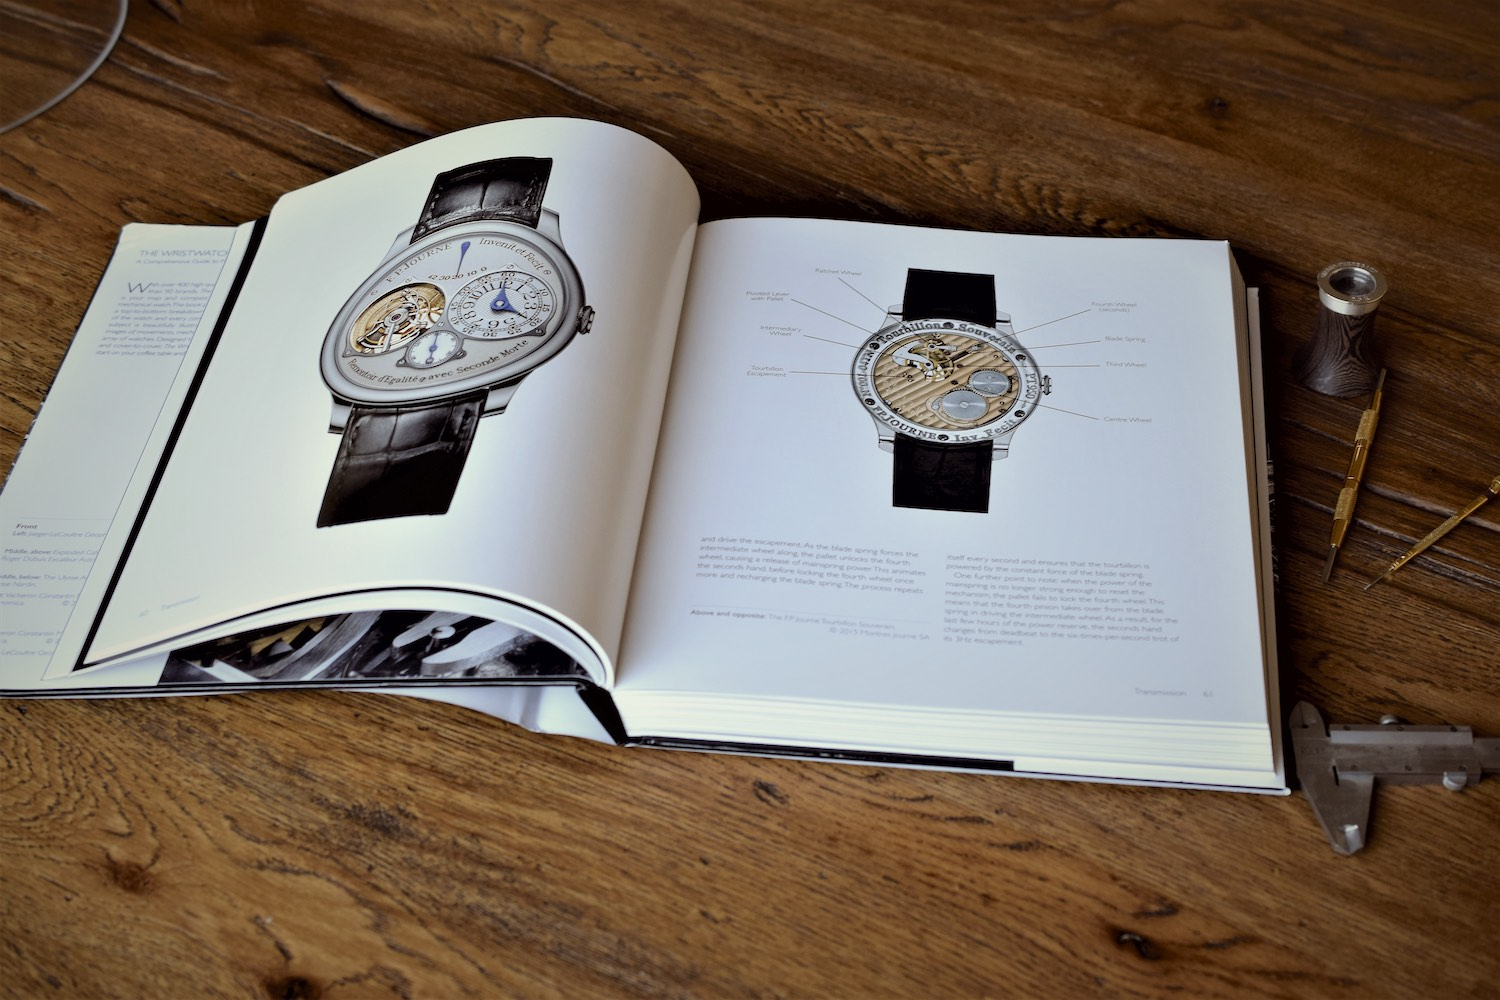 The Wristwatch Handbook by Ryan Schmidt